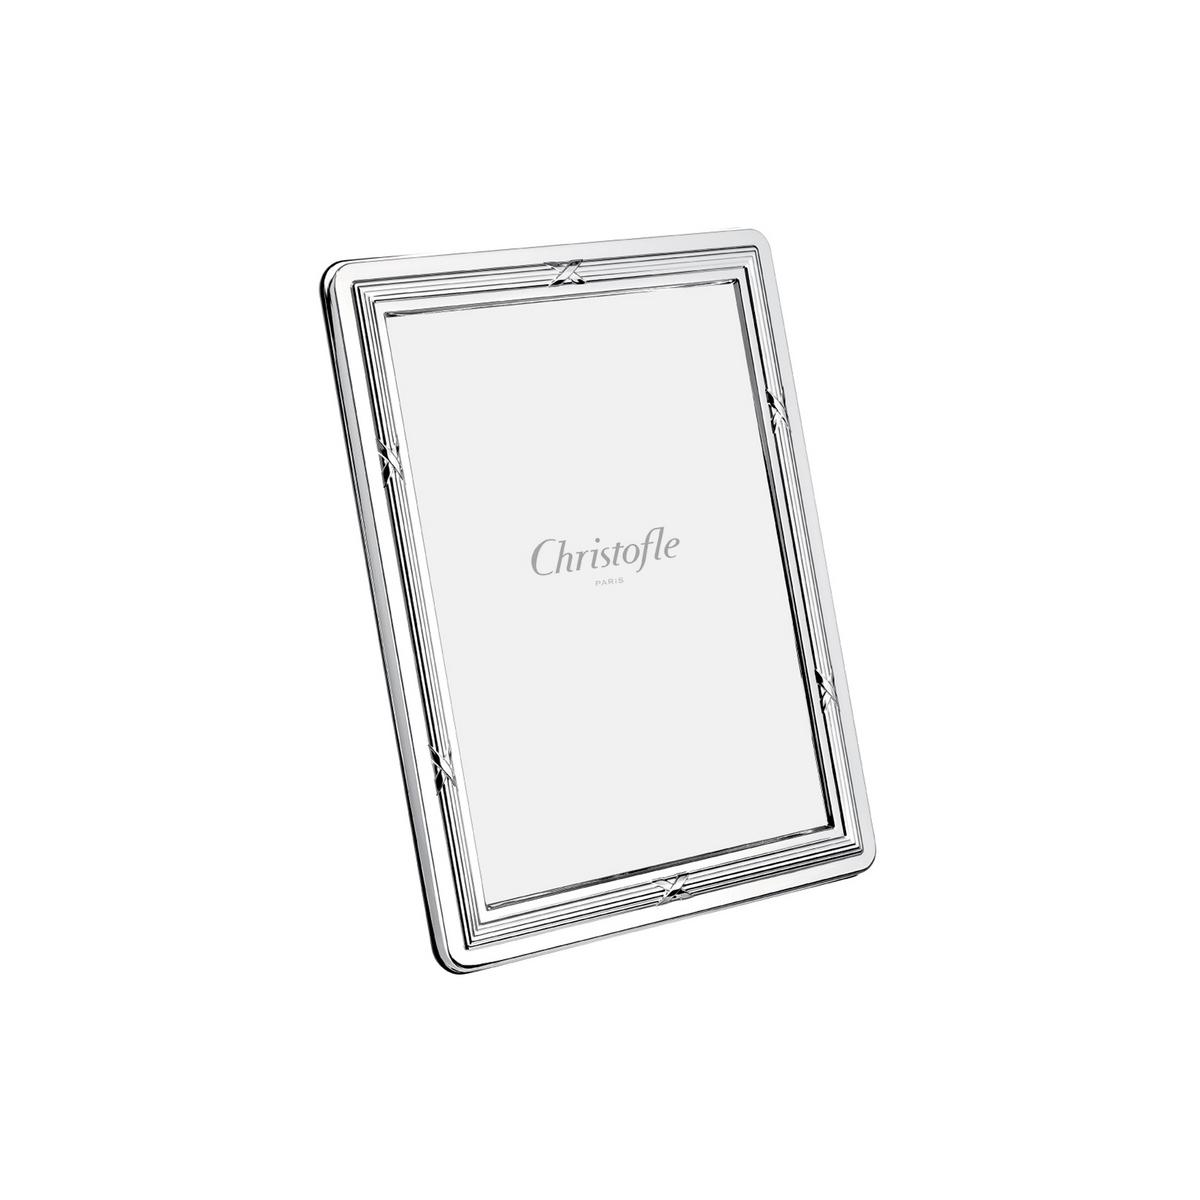 Christofle Rubans picture frame, silverplated, photo size 9 x 13 cm ...